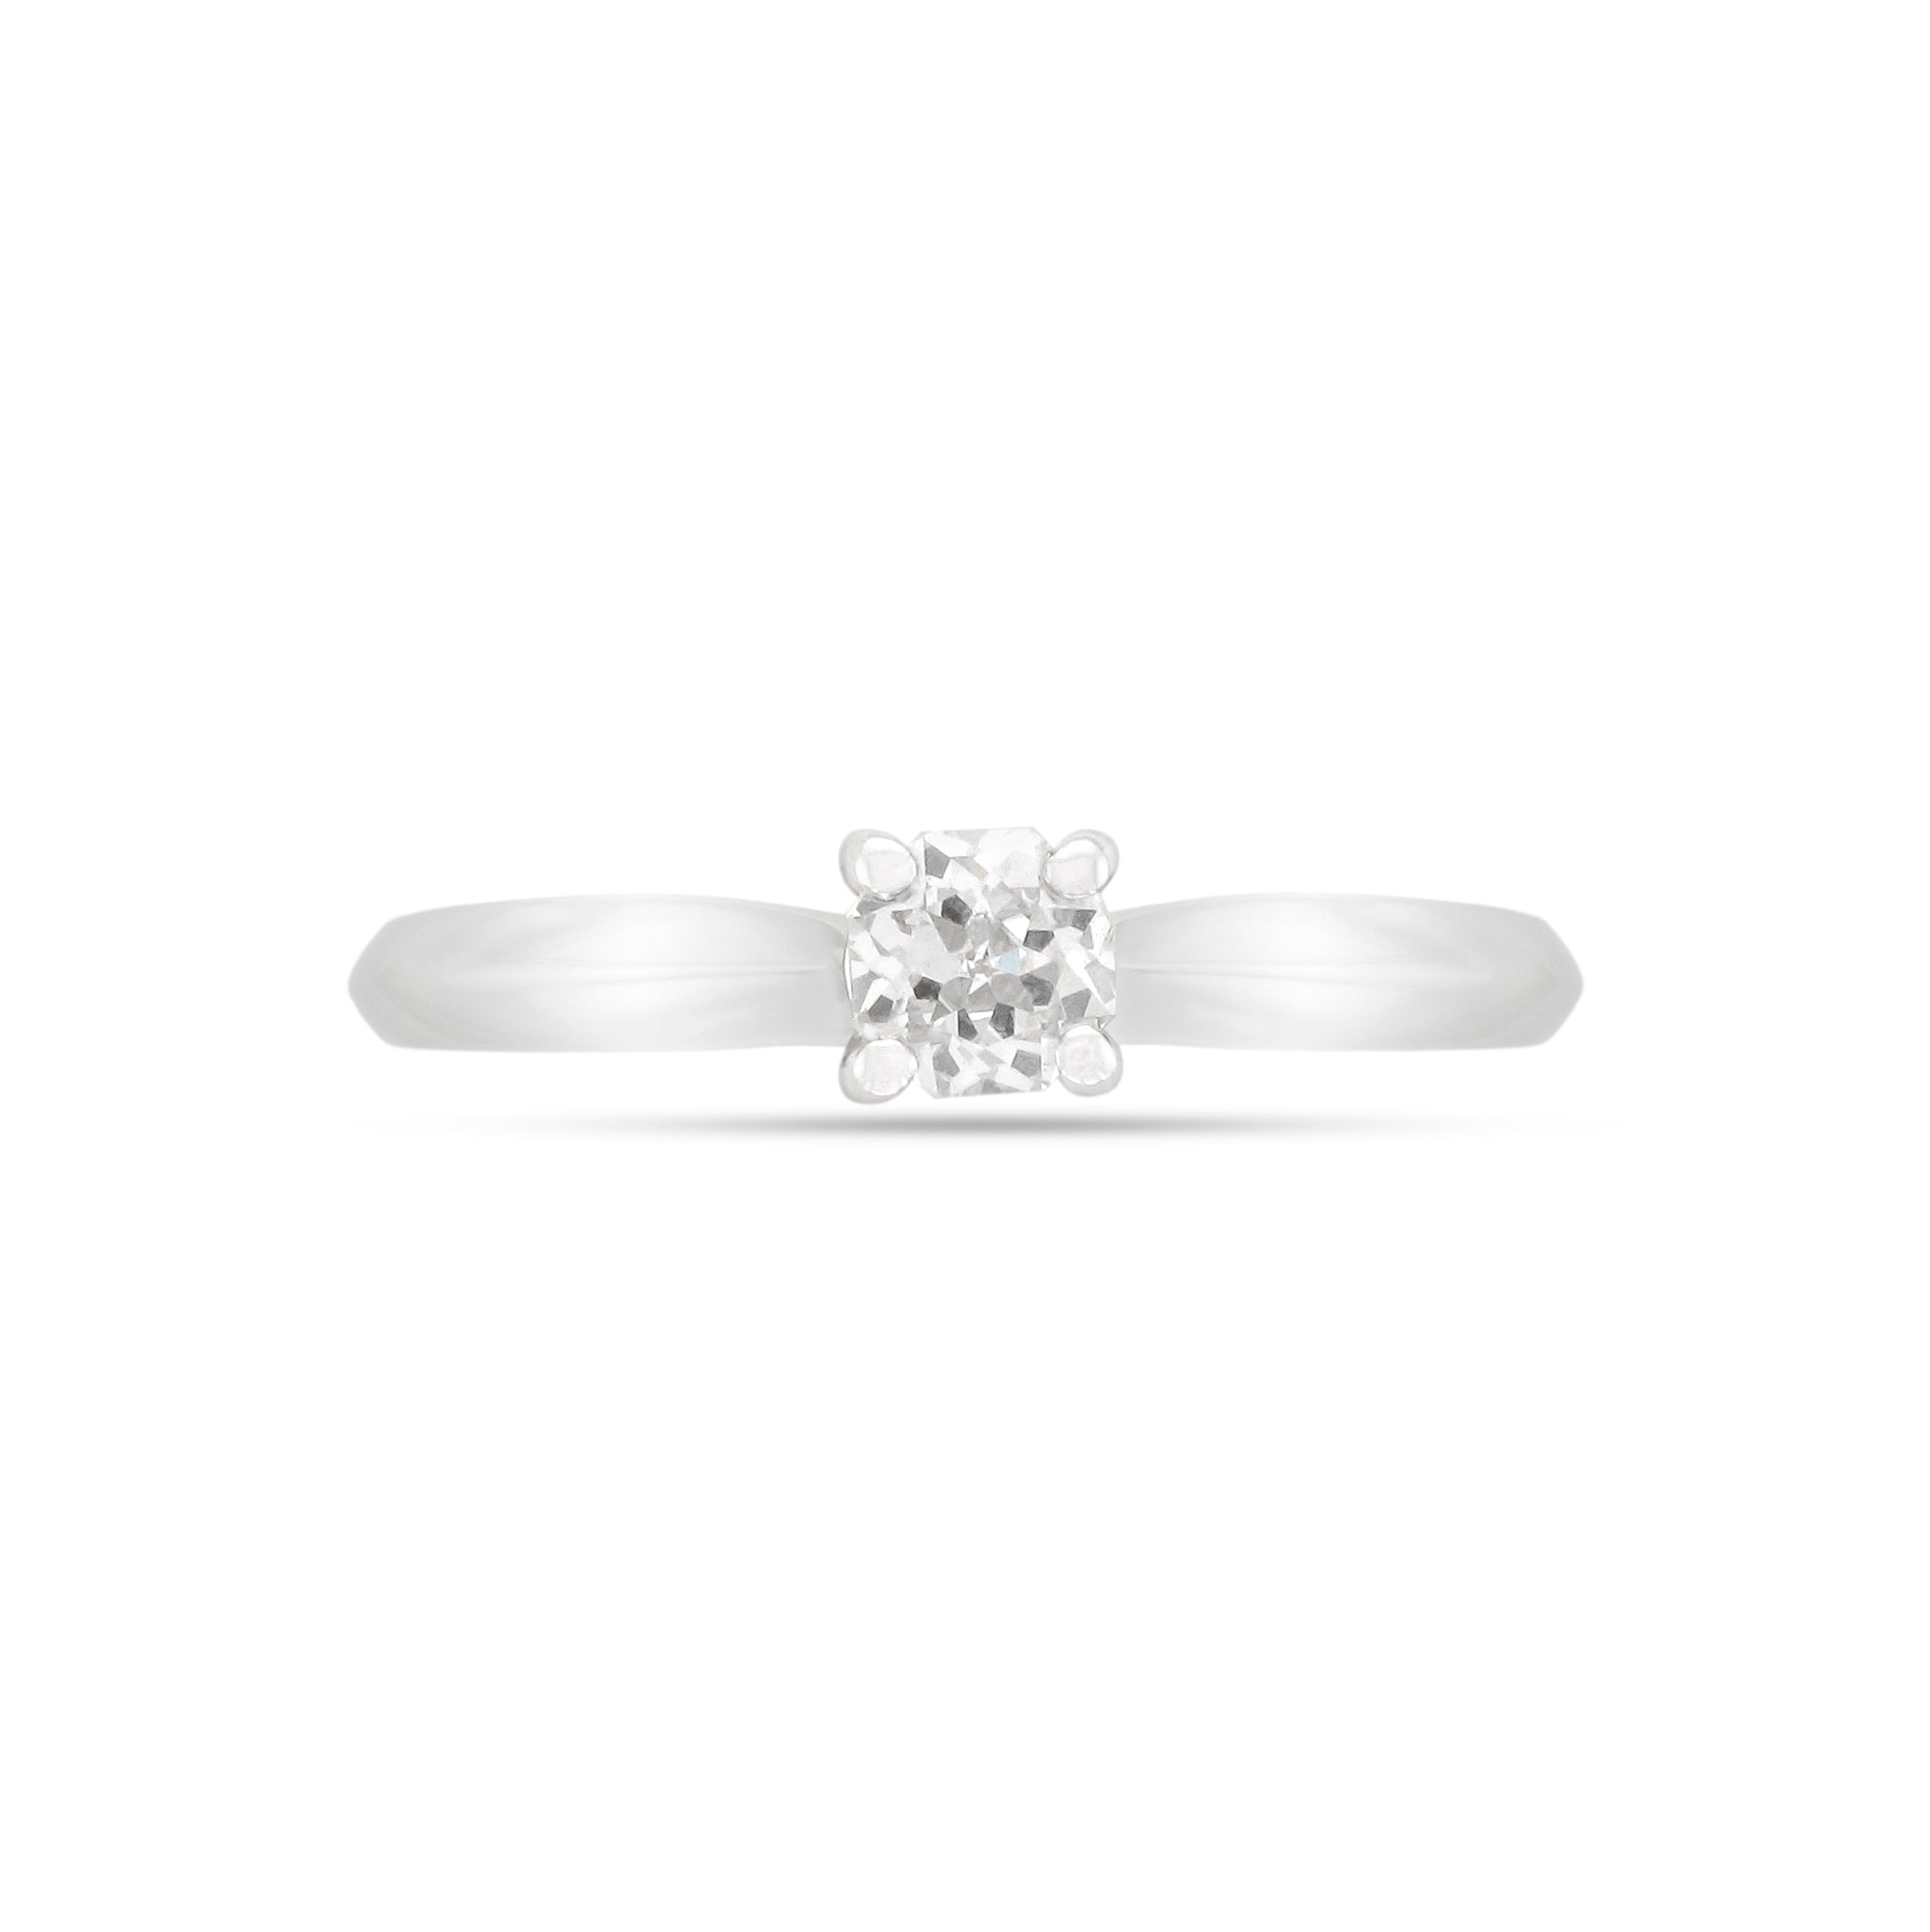 0.33ct Round Brilliant Solitaire Diamond Engagement Ring